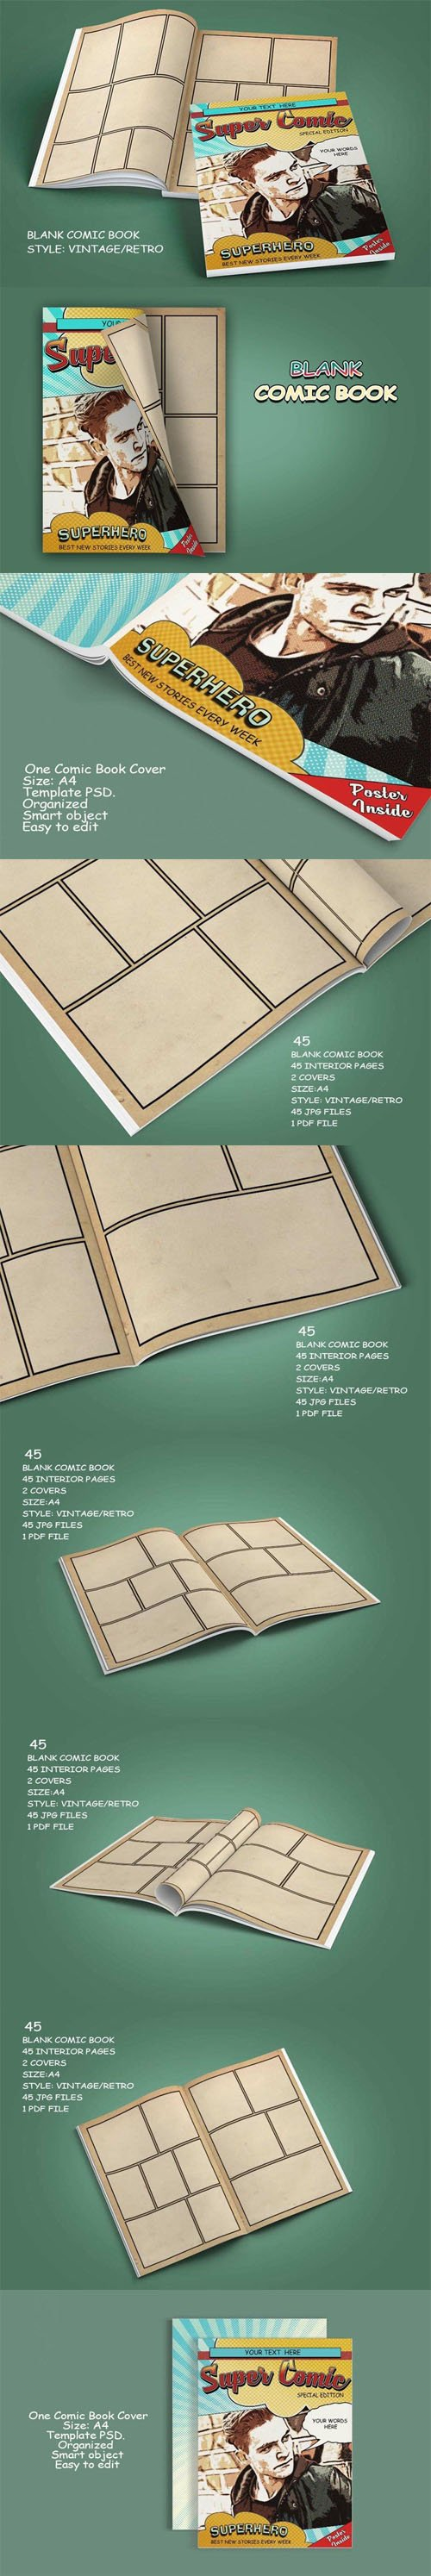 Blank Comic Book Pages & Covers